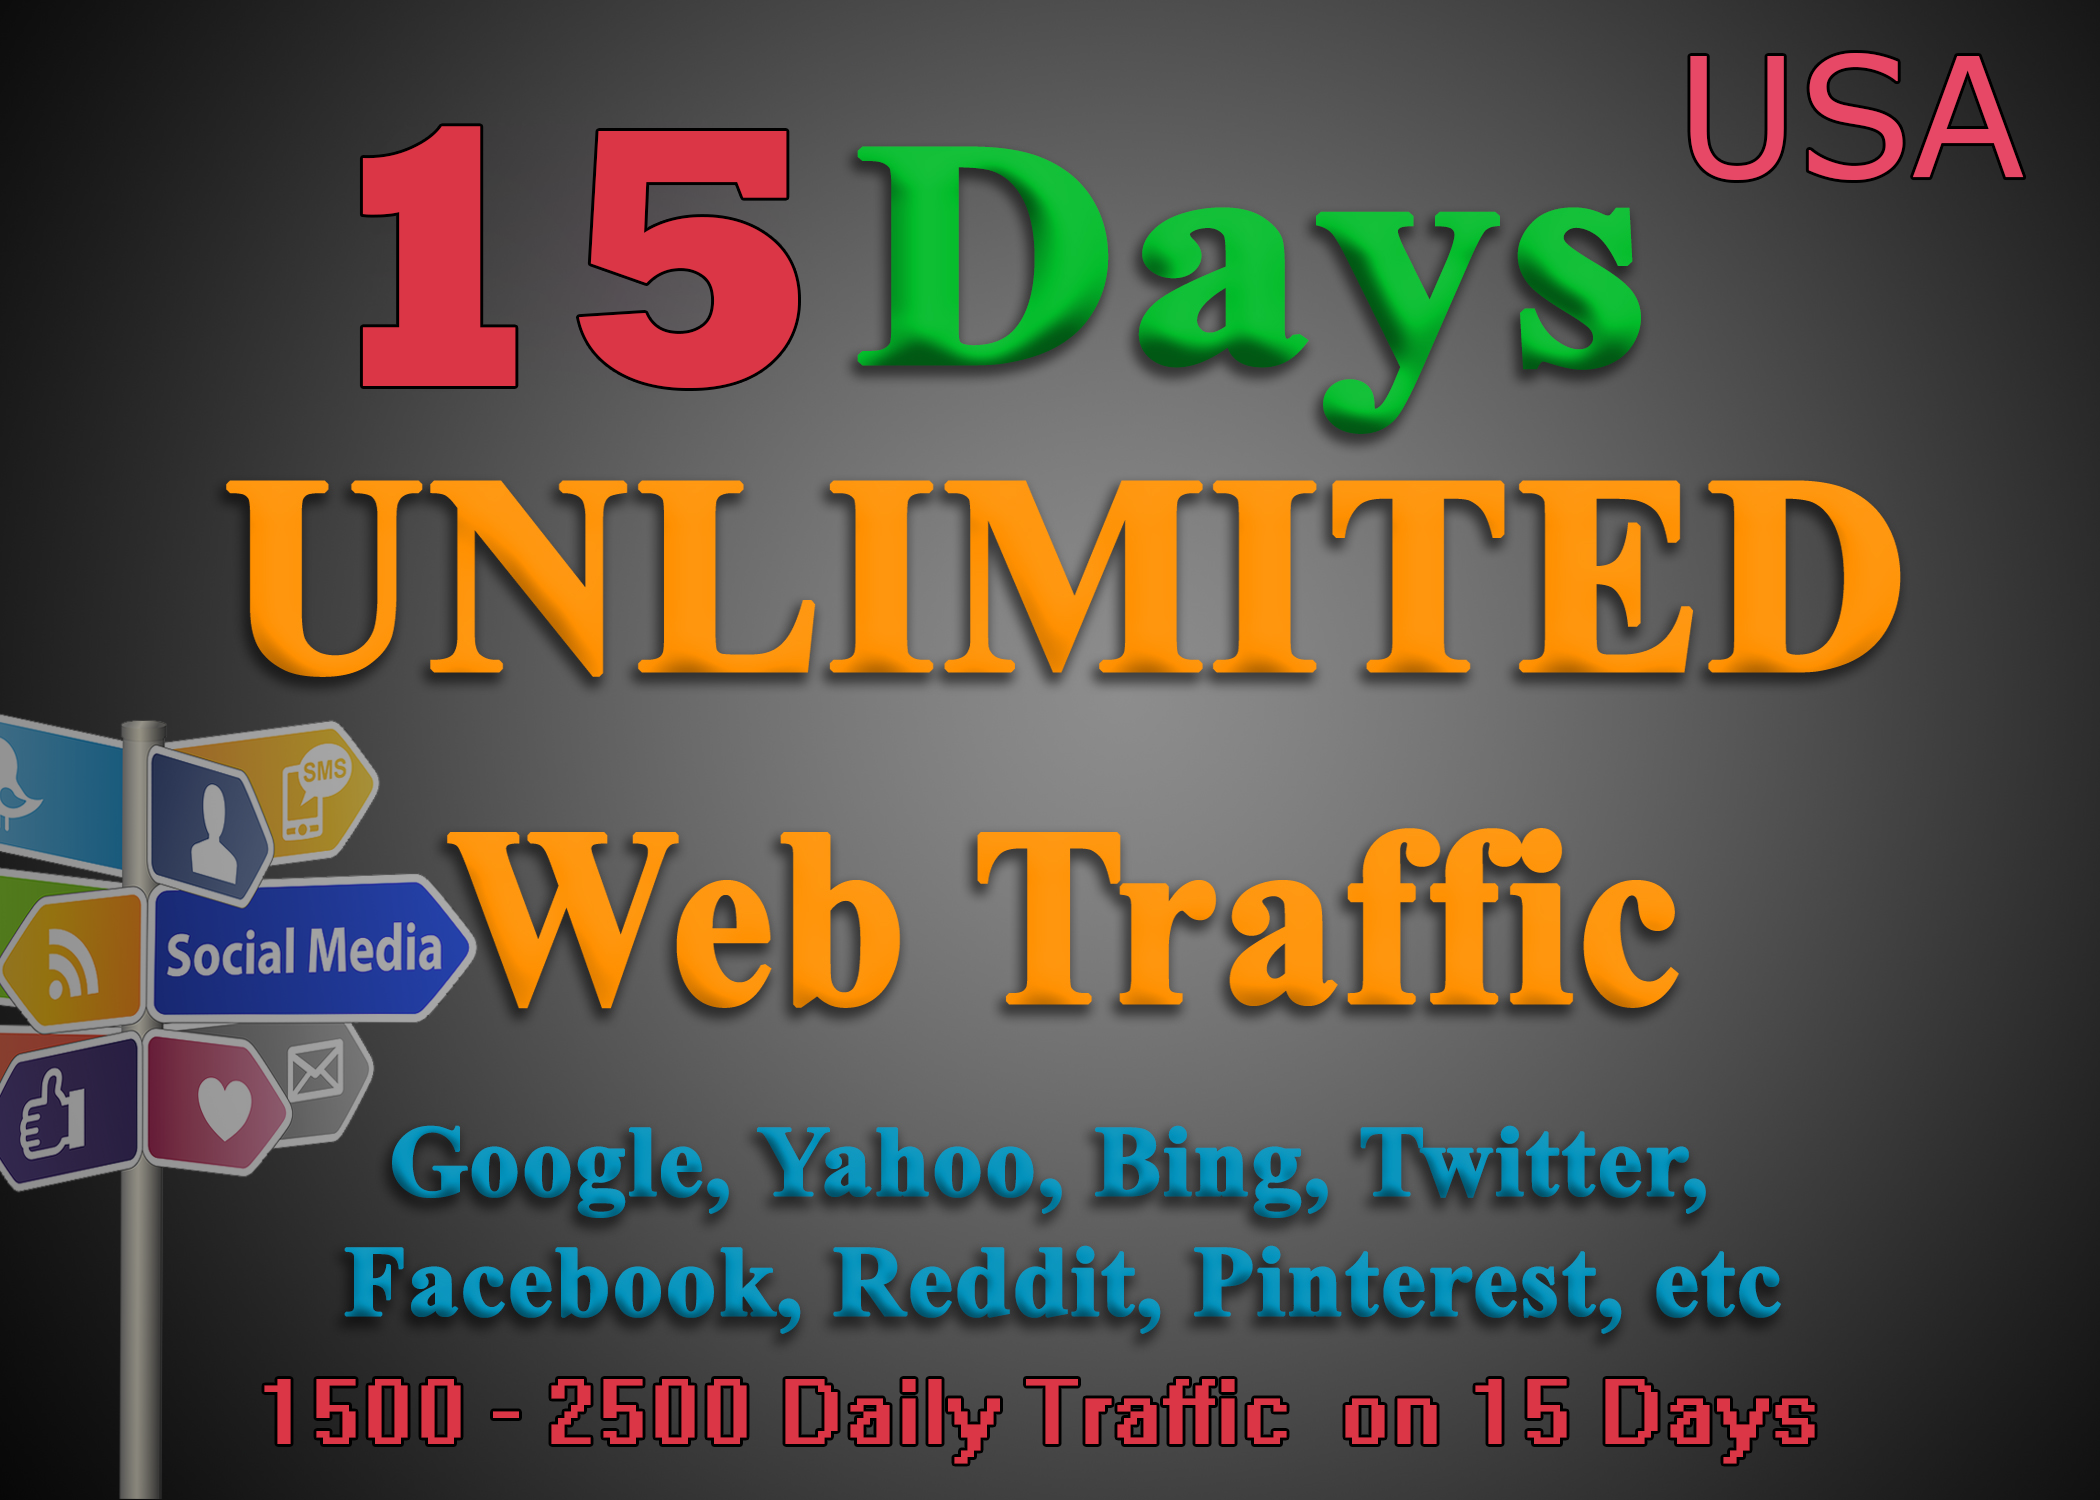 Drive Your Website By Sending Unlimited Targeted Web Traffic